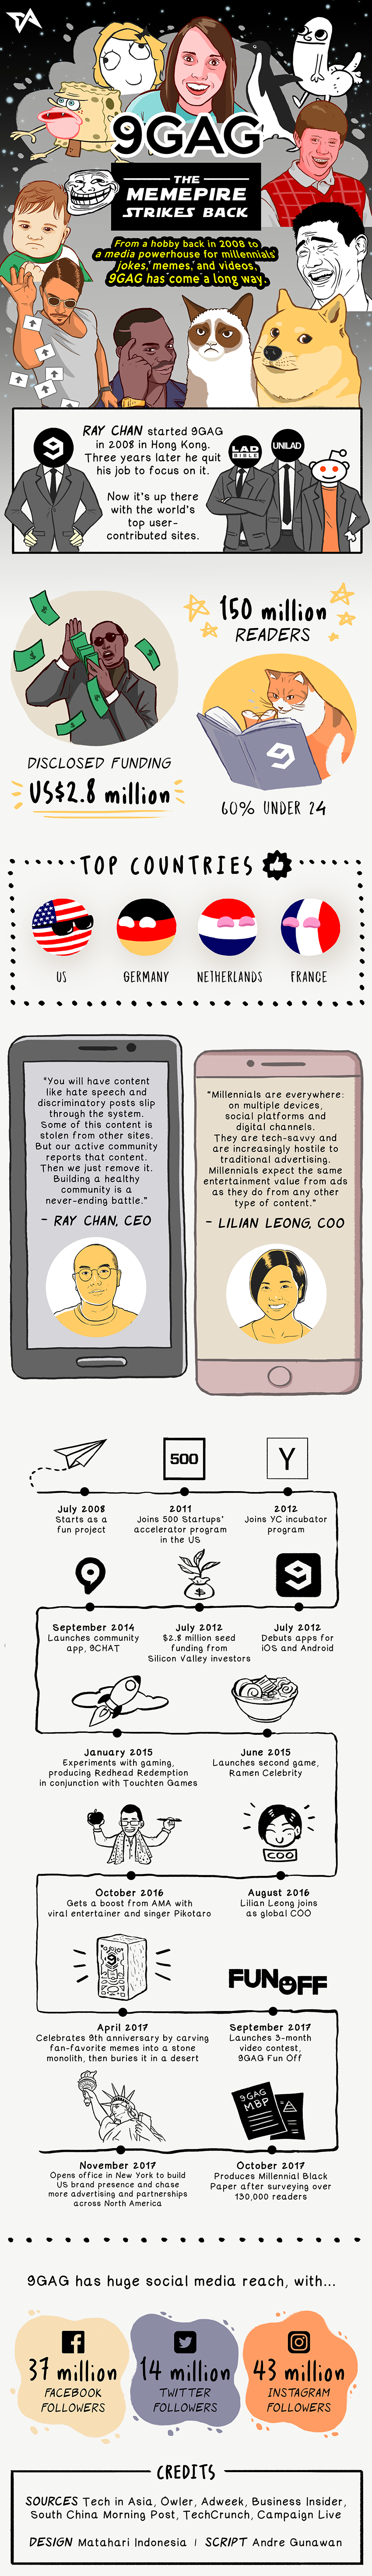 9Gag: From Memes to Media Empire - #Infographic